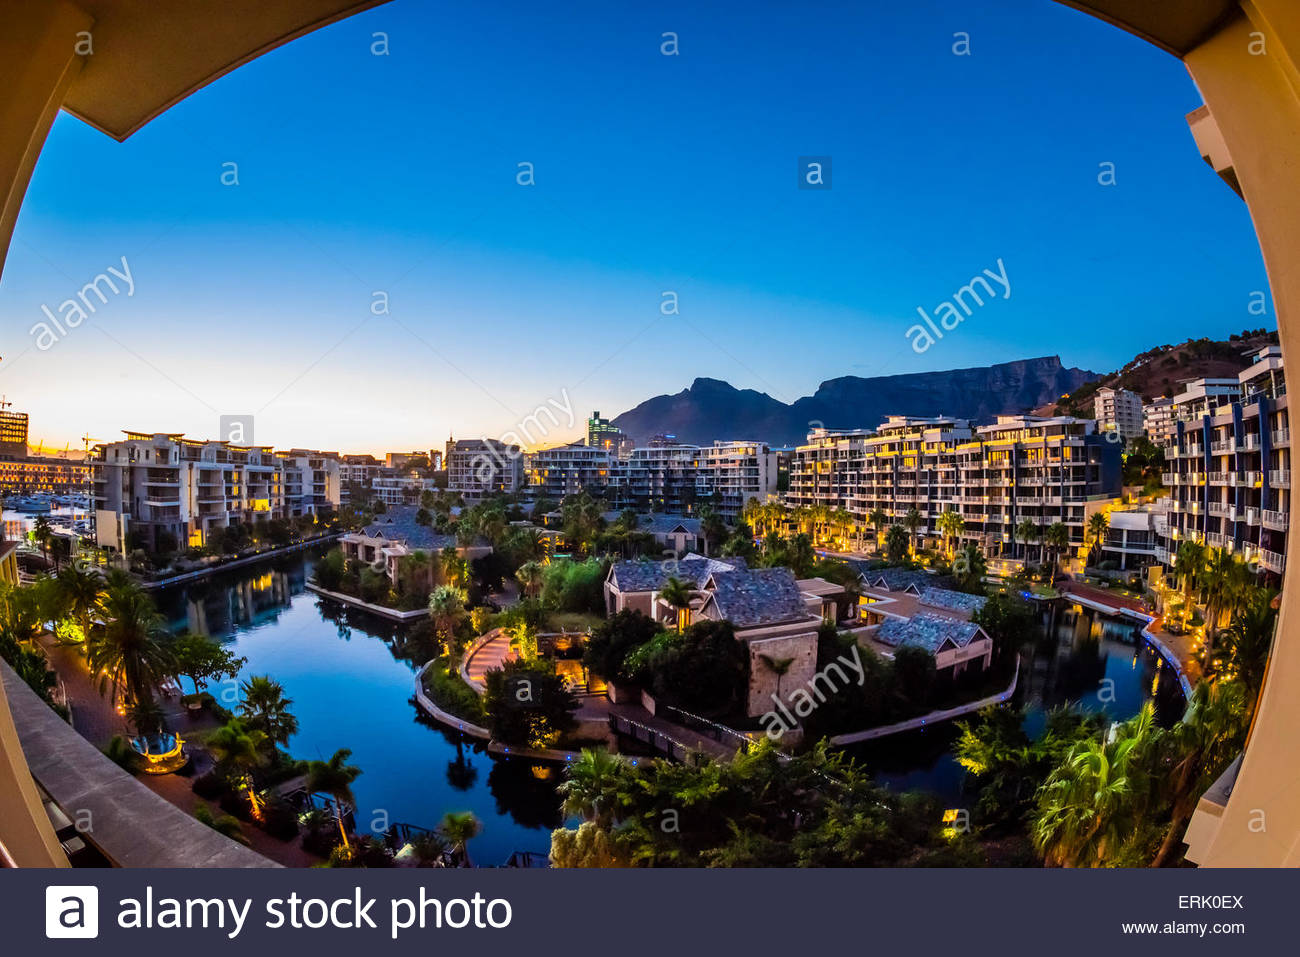 View from balcony at sunrise with apartment buildings and Table Mountain in background, Hotel One&Only Cape - Stock Image